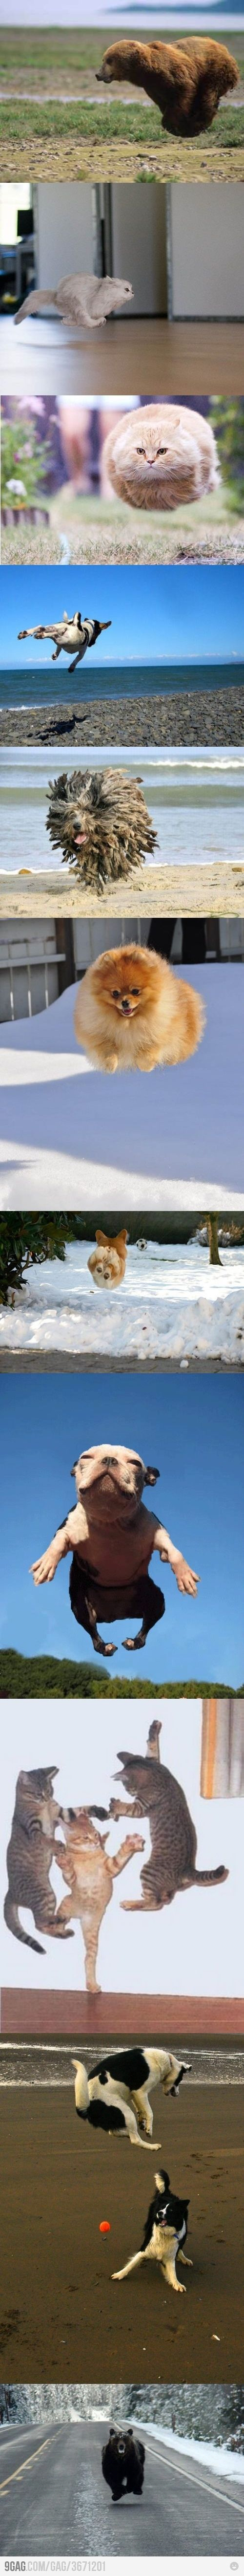 Hover animals. Awesome.